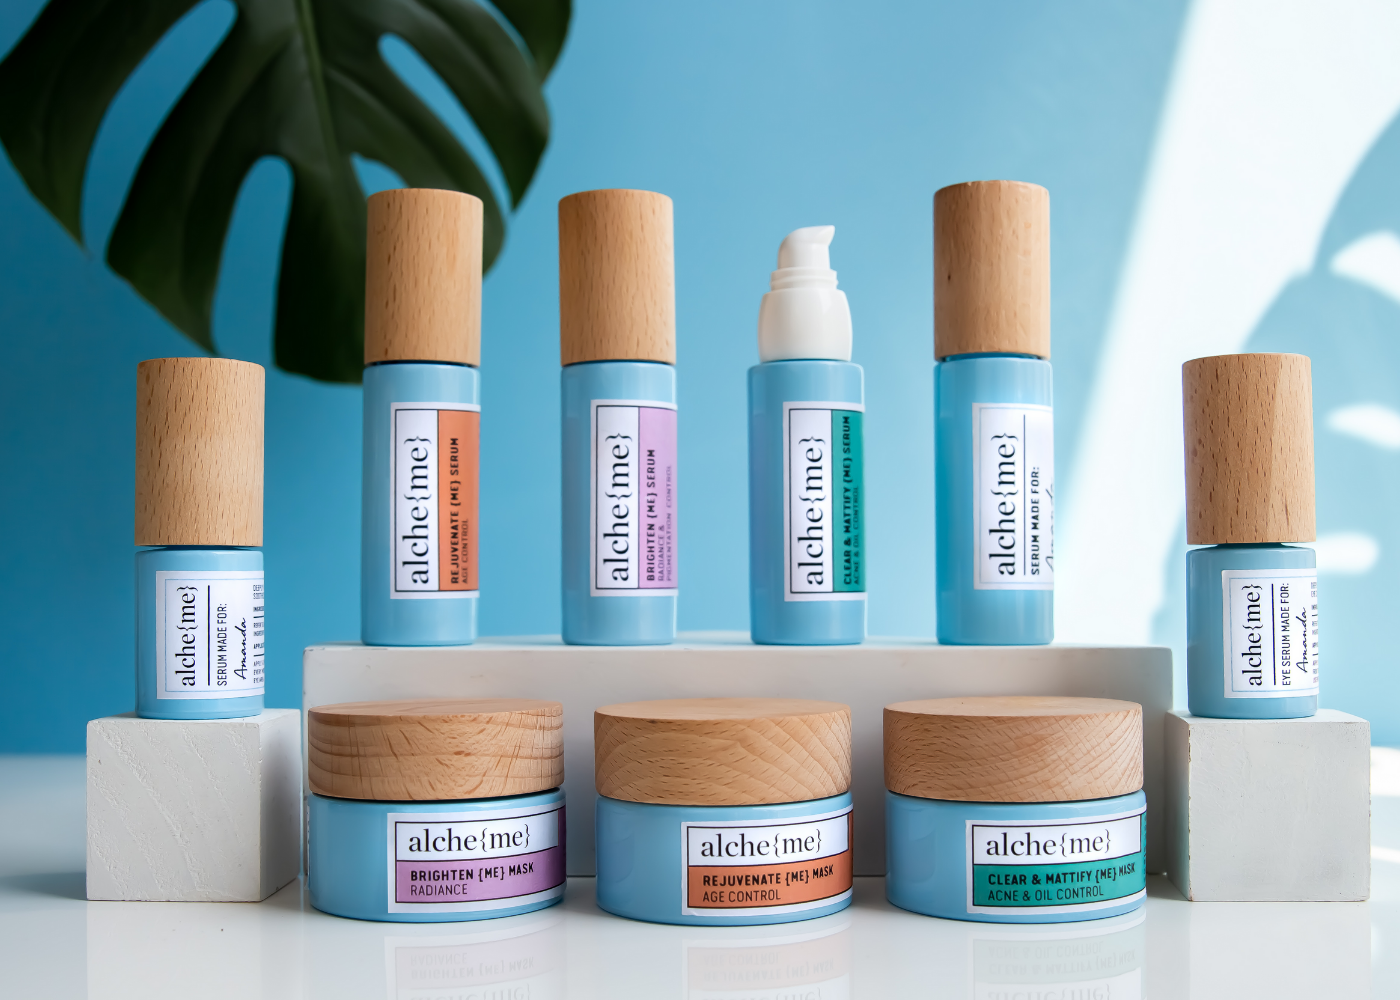 Clean skincare brand Alche(me) introduces new environmentally-friendly packaging | best beauty buys 2020